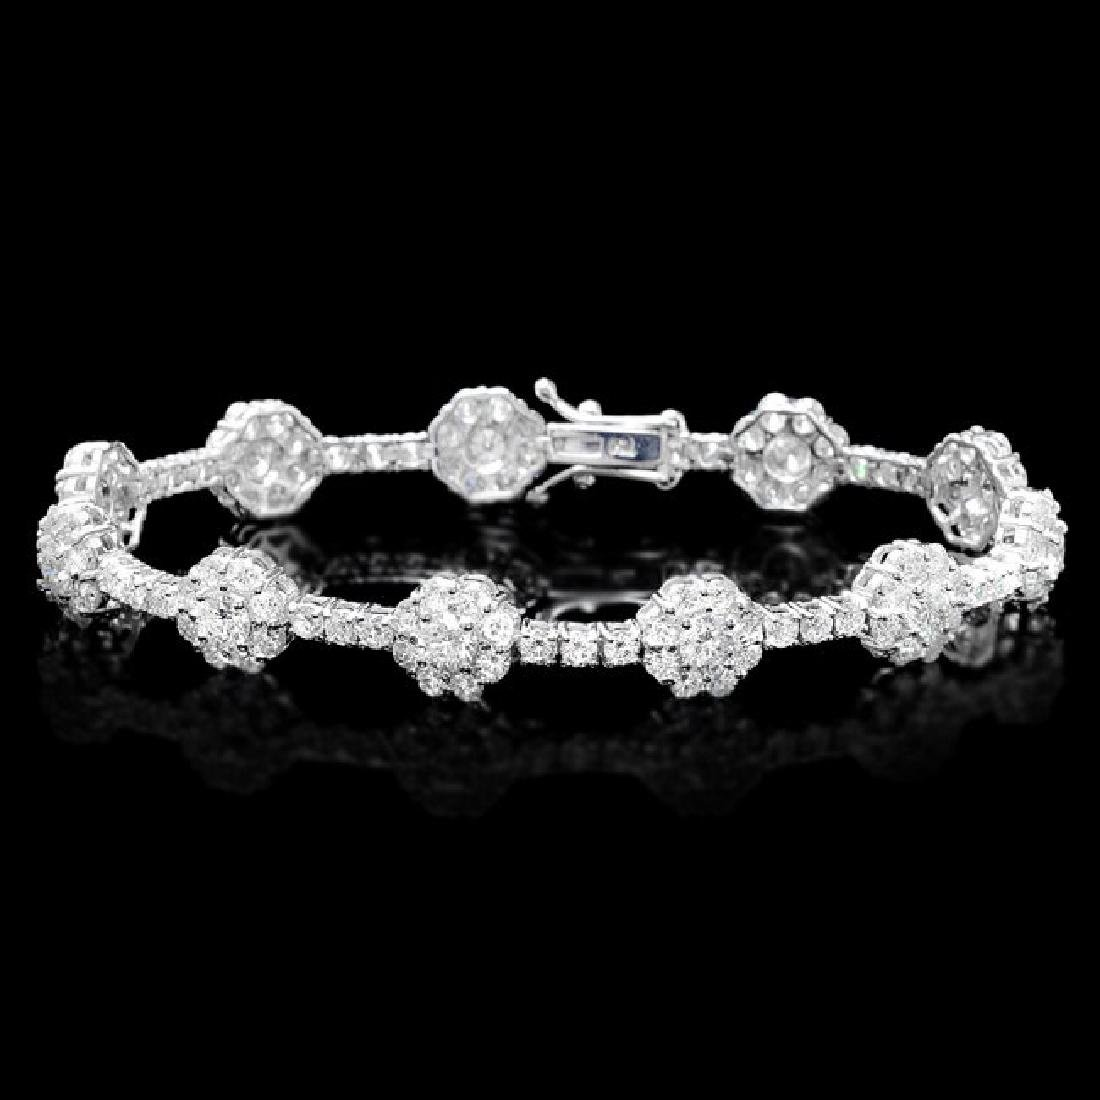 18k White Gold 8.20ct Diamond Bracelet